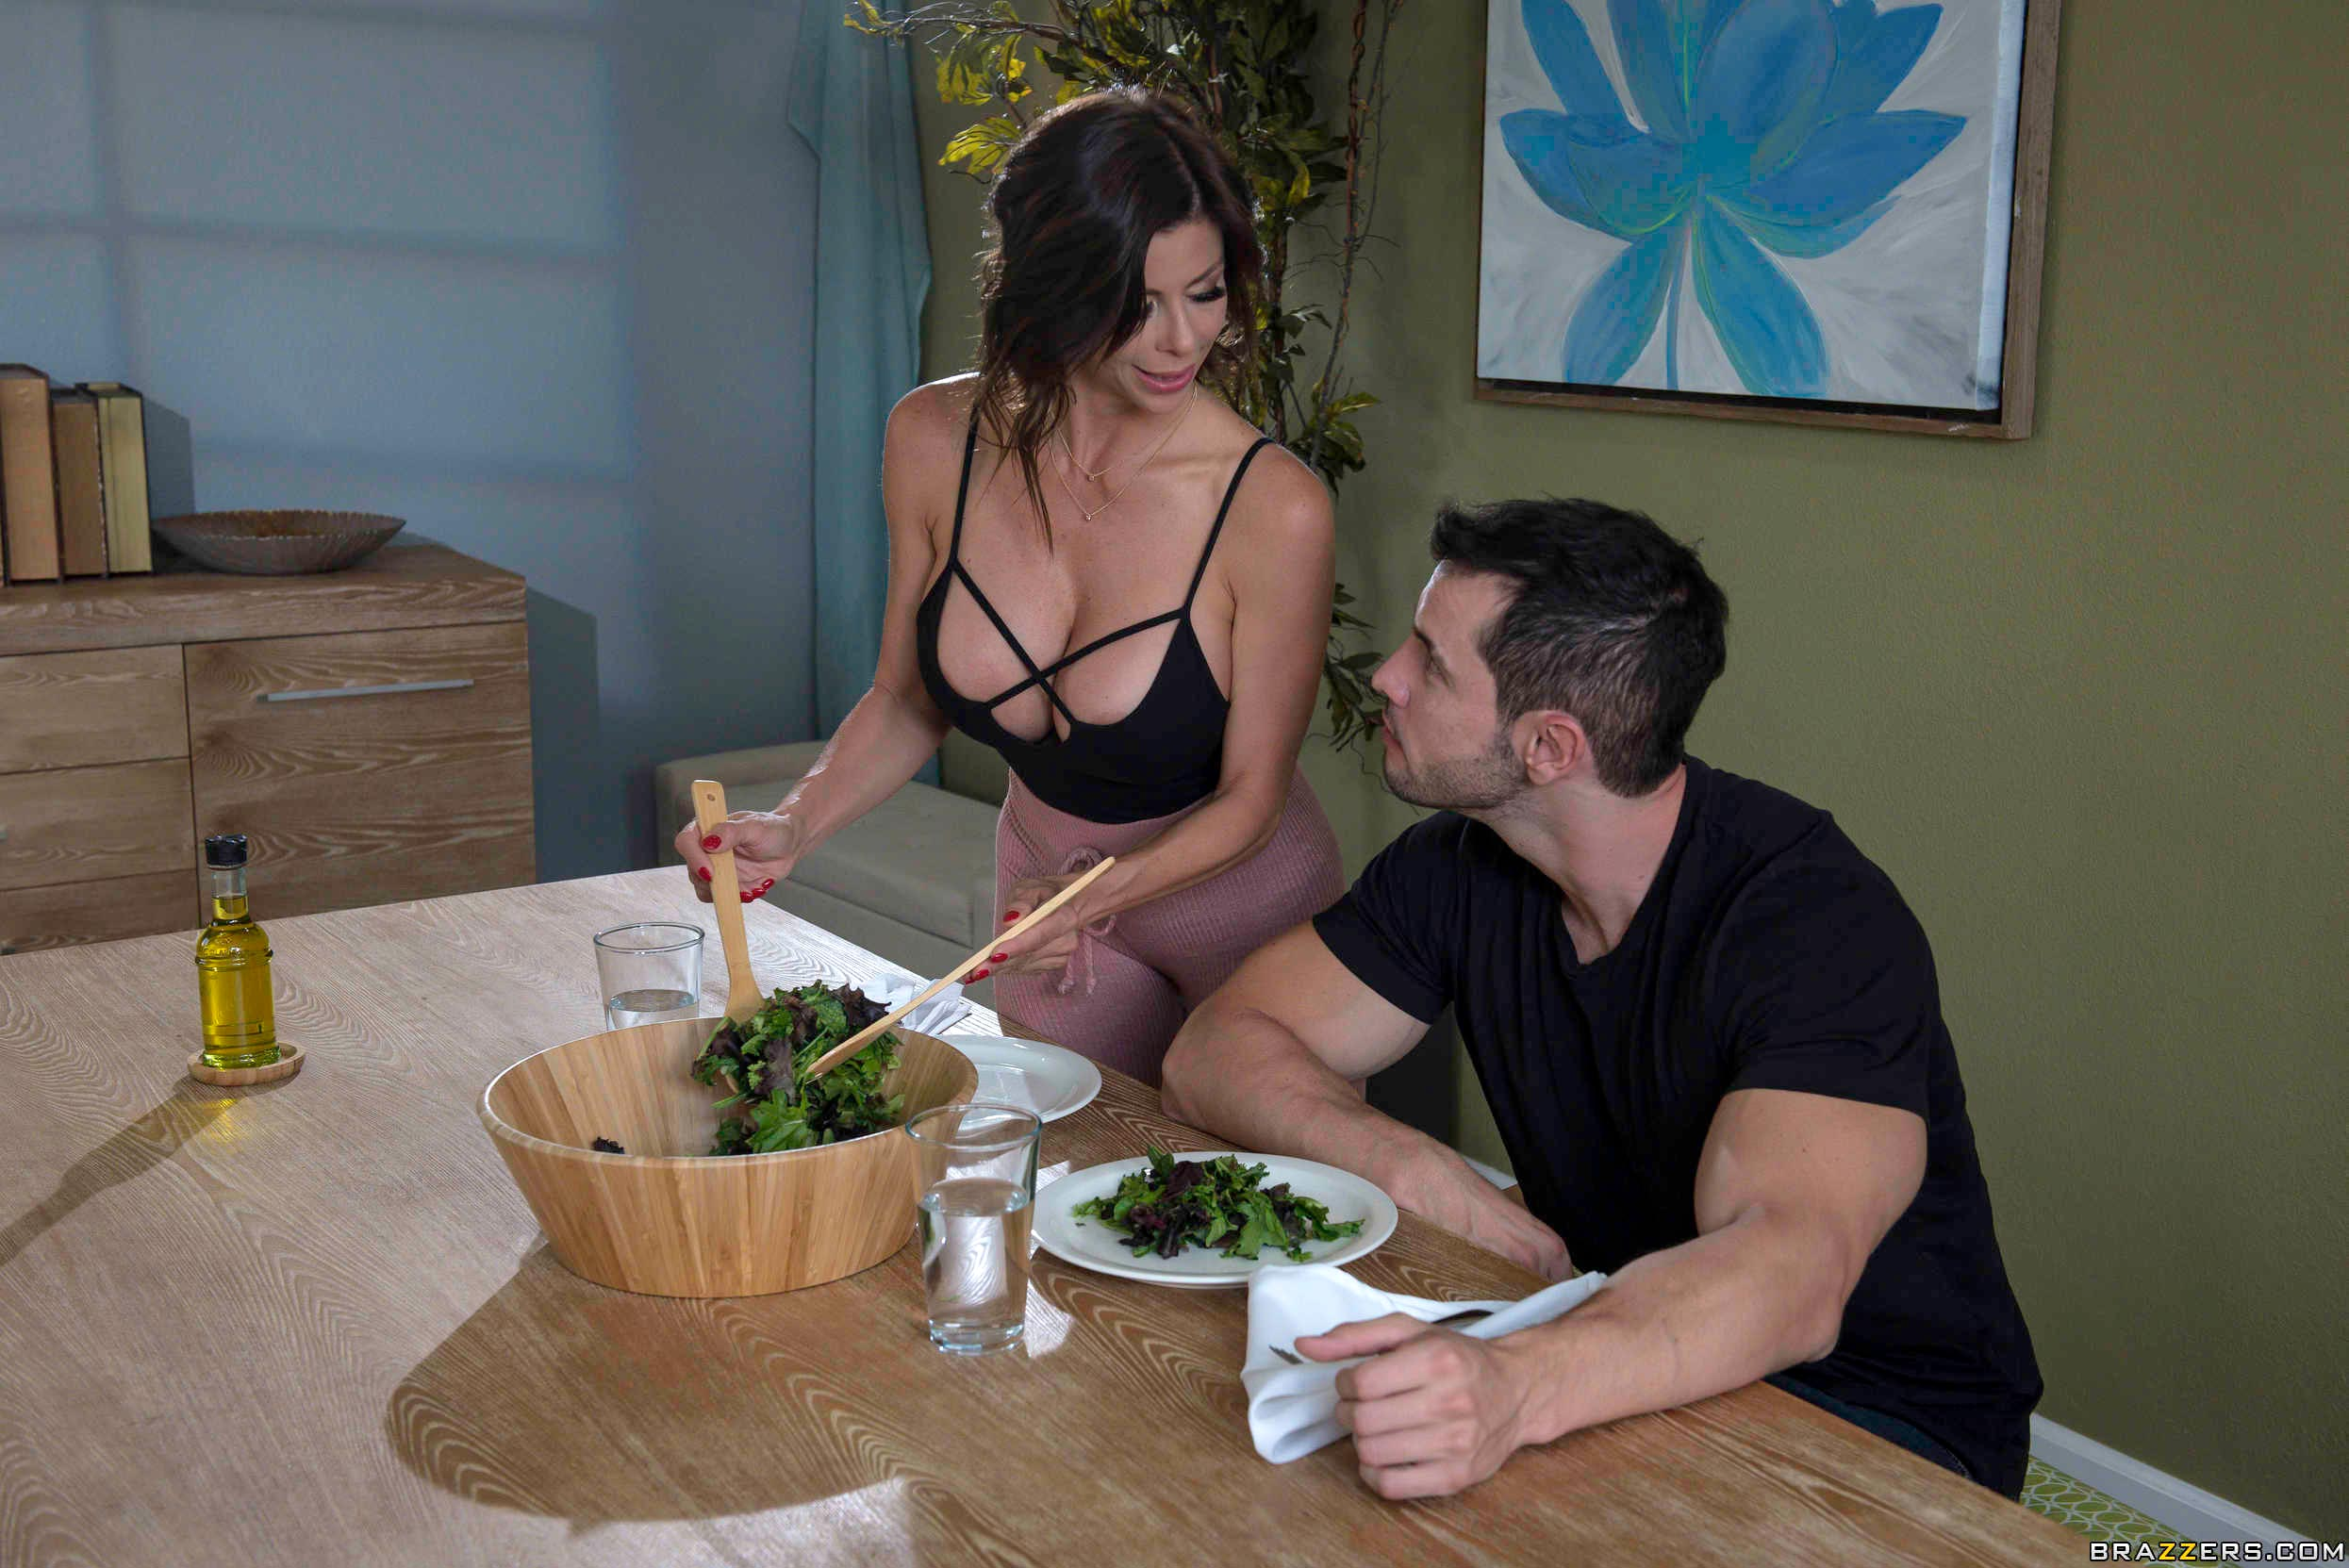 Alexis Fawx Wet Food Porn the nest is the best with alexis fawx – the boobs blog